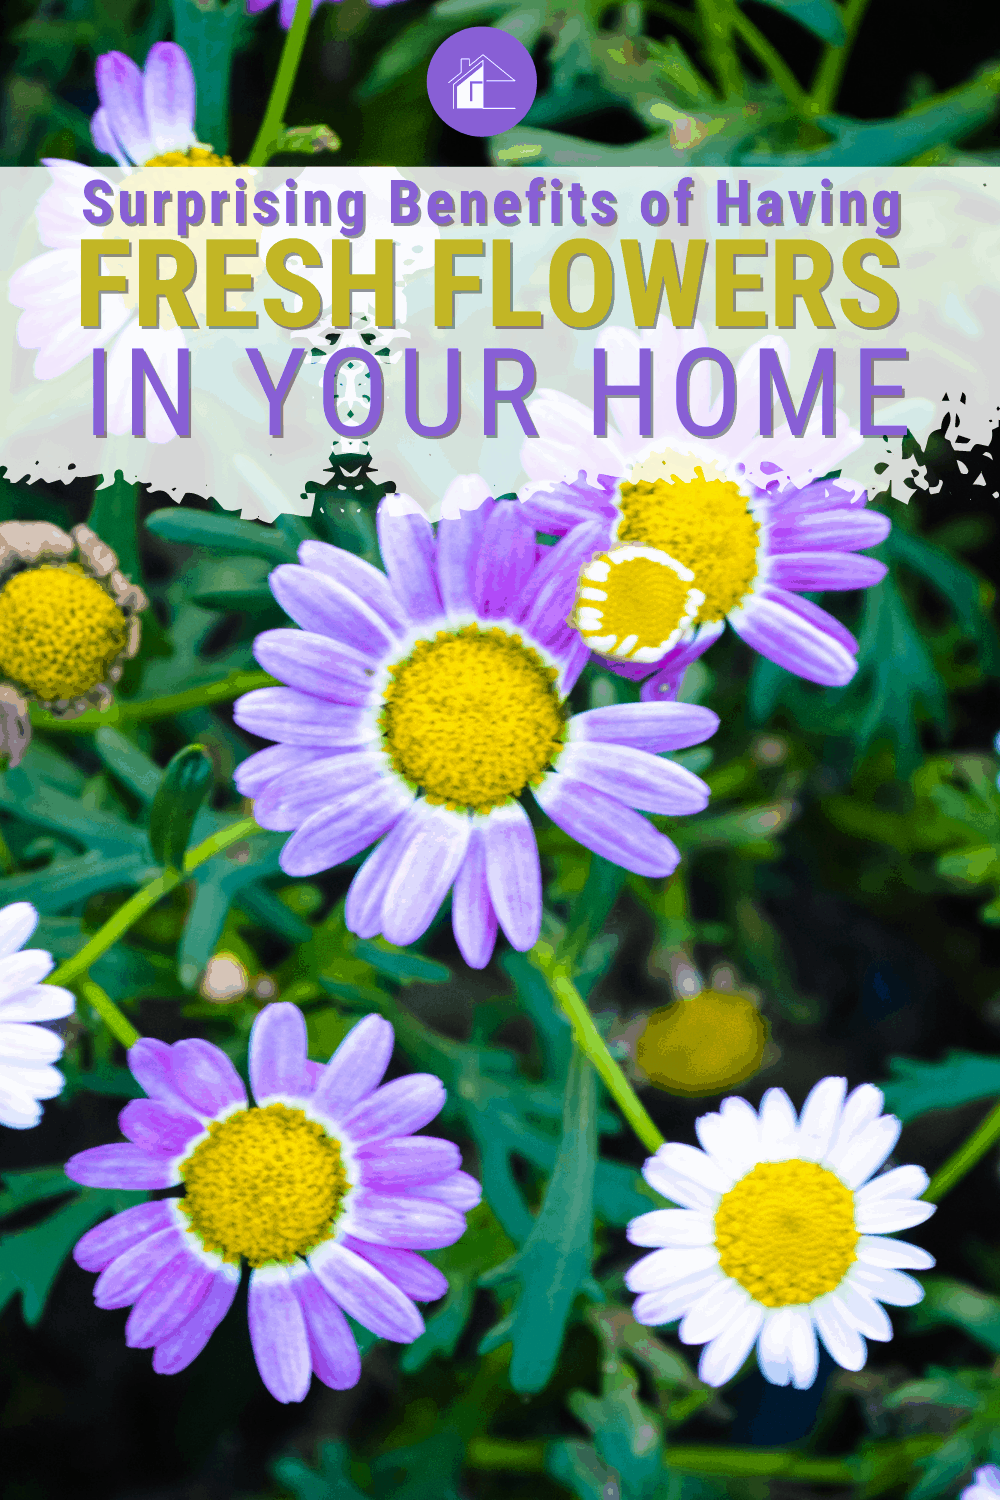 Find out some surprising benefits of having fresh flowers in your home. This article tells you all about it, from the health and wellness aspects to how they can improve your mood. #freshflowers via @mystayathome